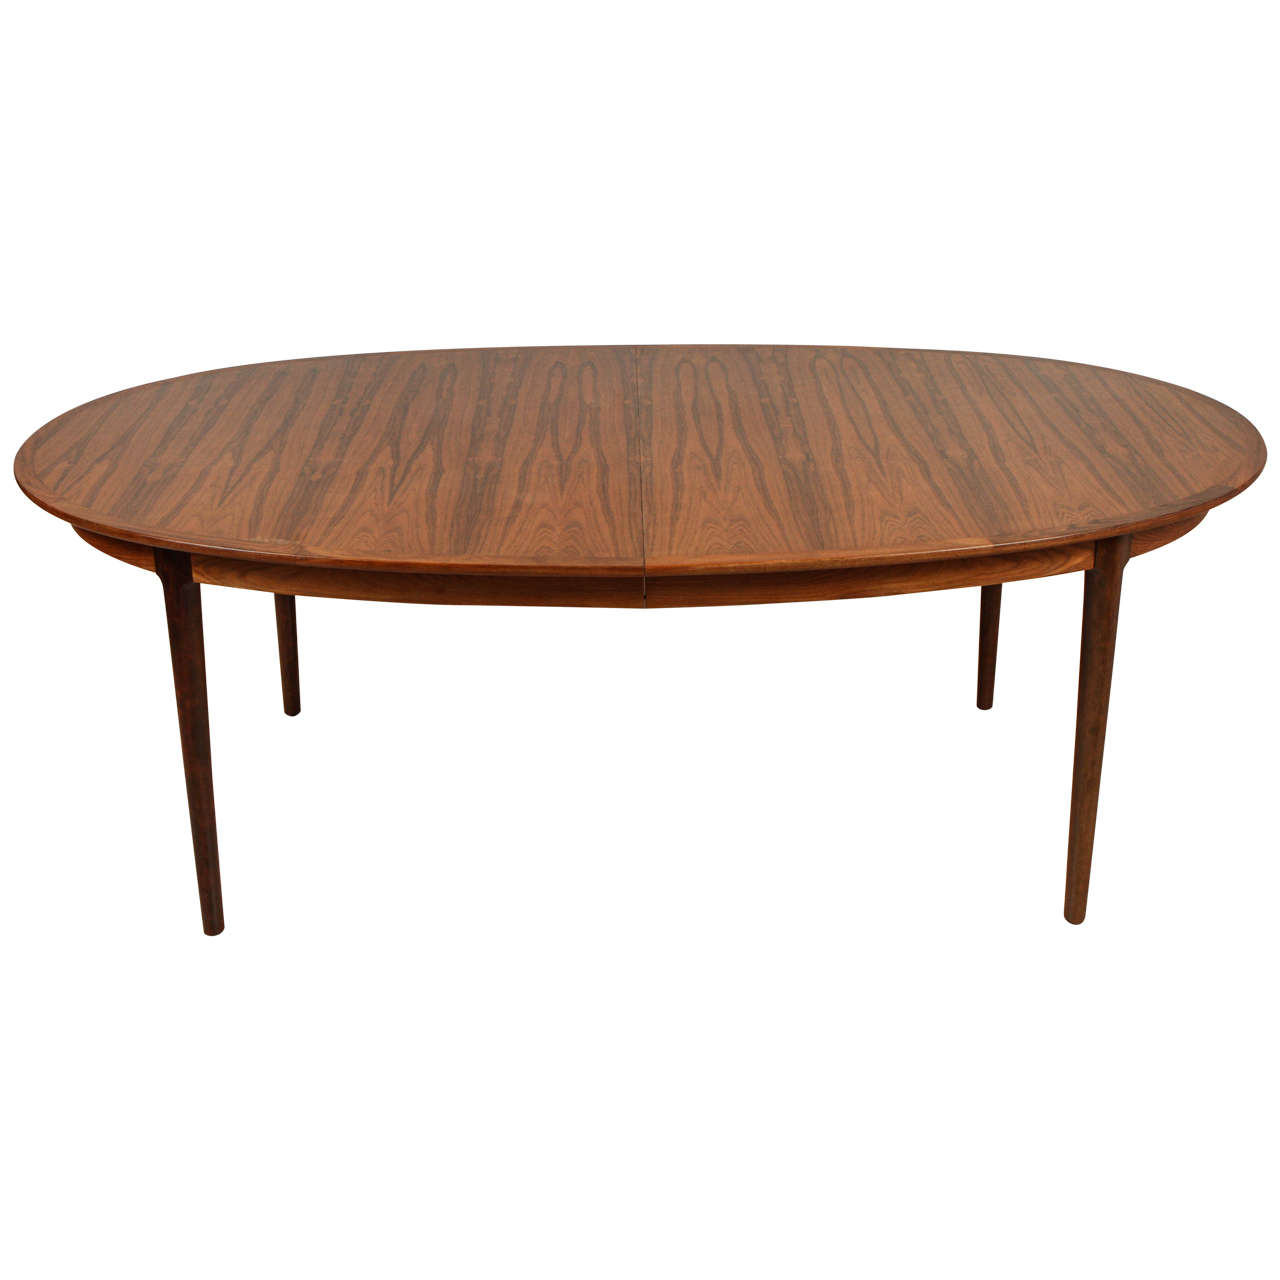 Rosewood Dining Table Norwegian Rosewood Dining Table By Torbjrn Afdal For Bruksbo